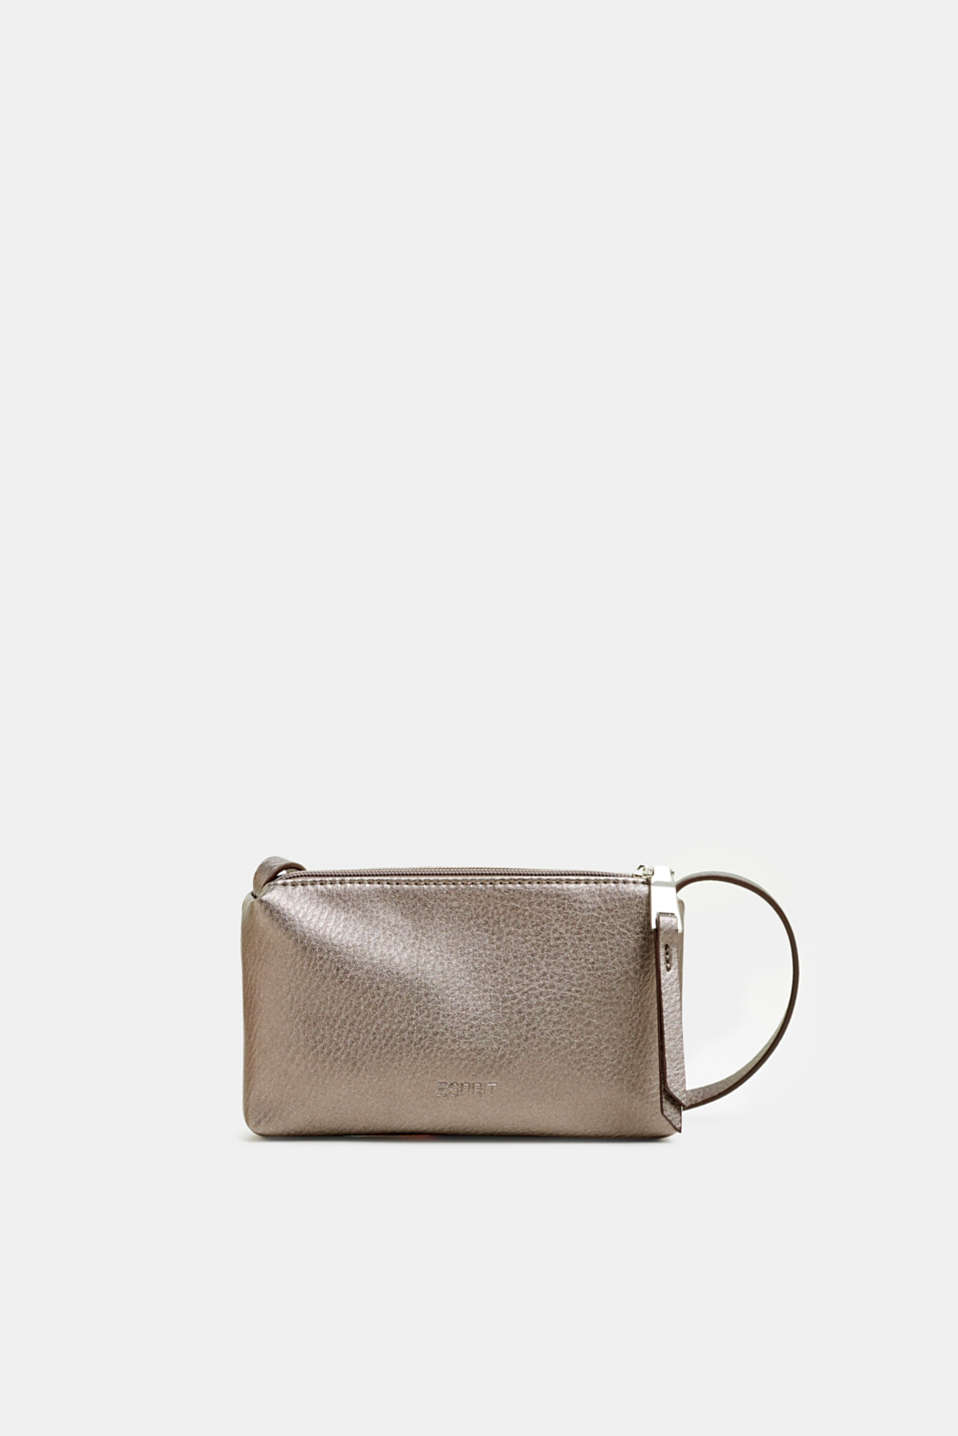 Esprit - Phone Bag in Leder-Optik